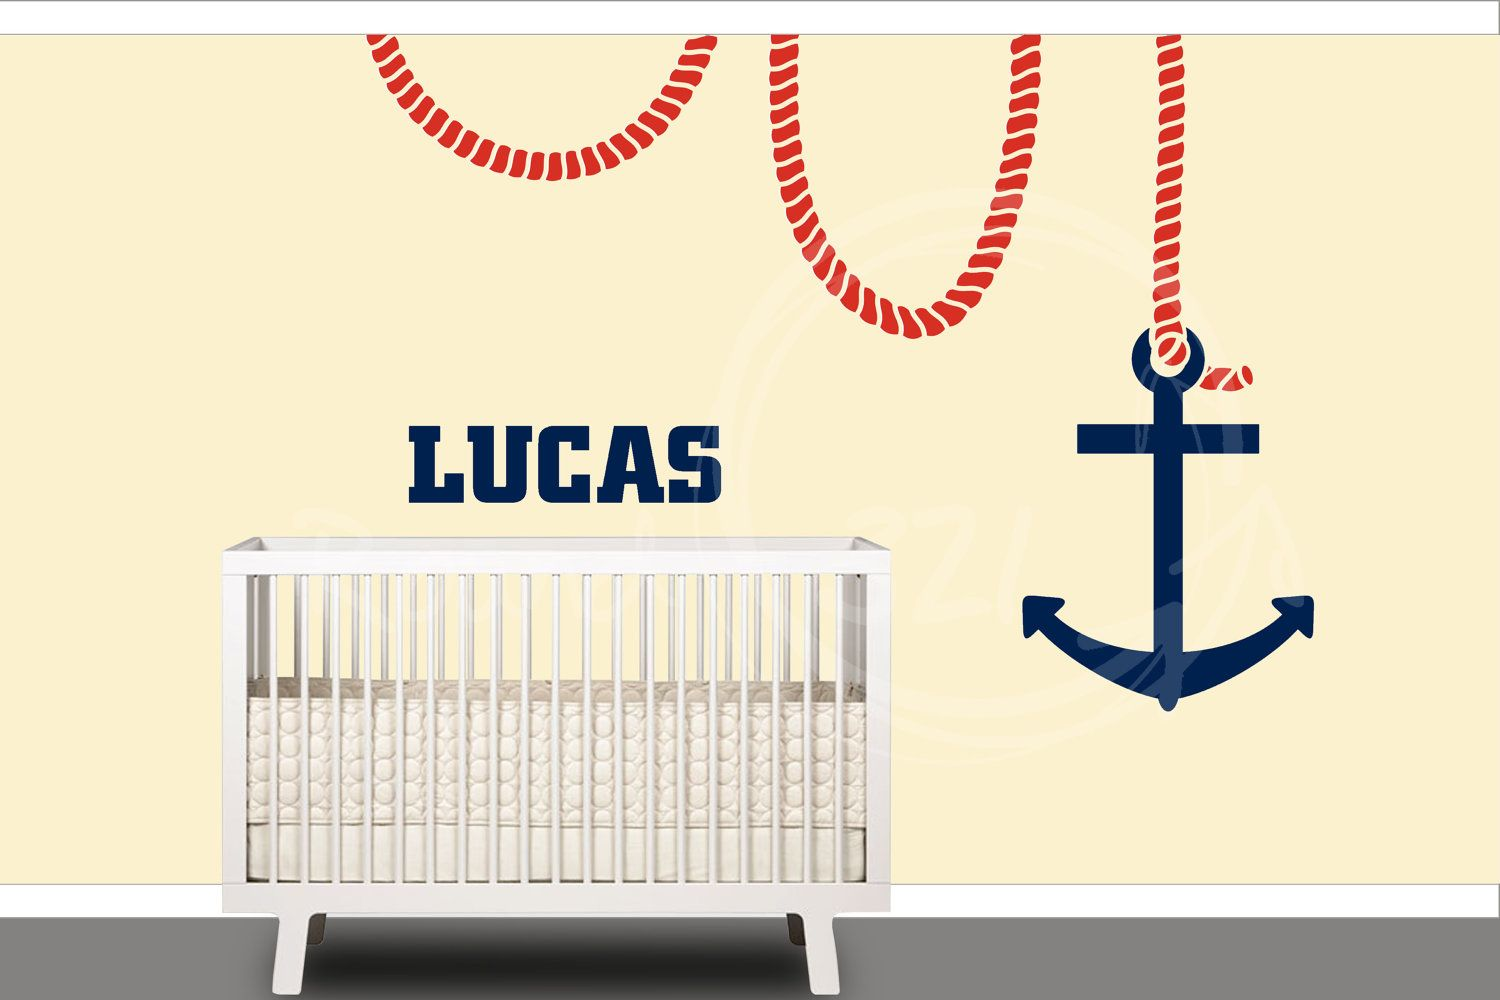 Nautical anchor wall decal customizable wall decal nursery nautical anchor wall decal customizable wall decal nursery decor playroom or bedroom wall amipublicfo Image collections